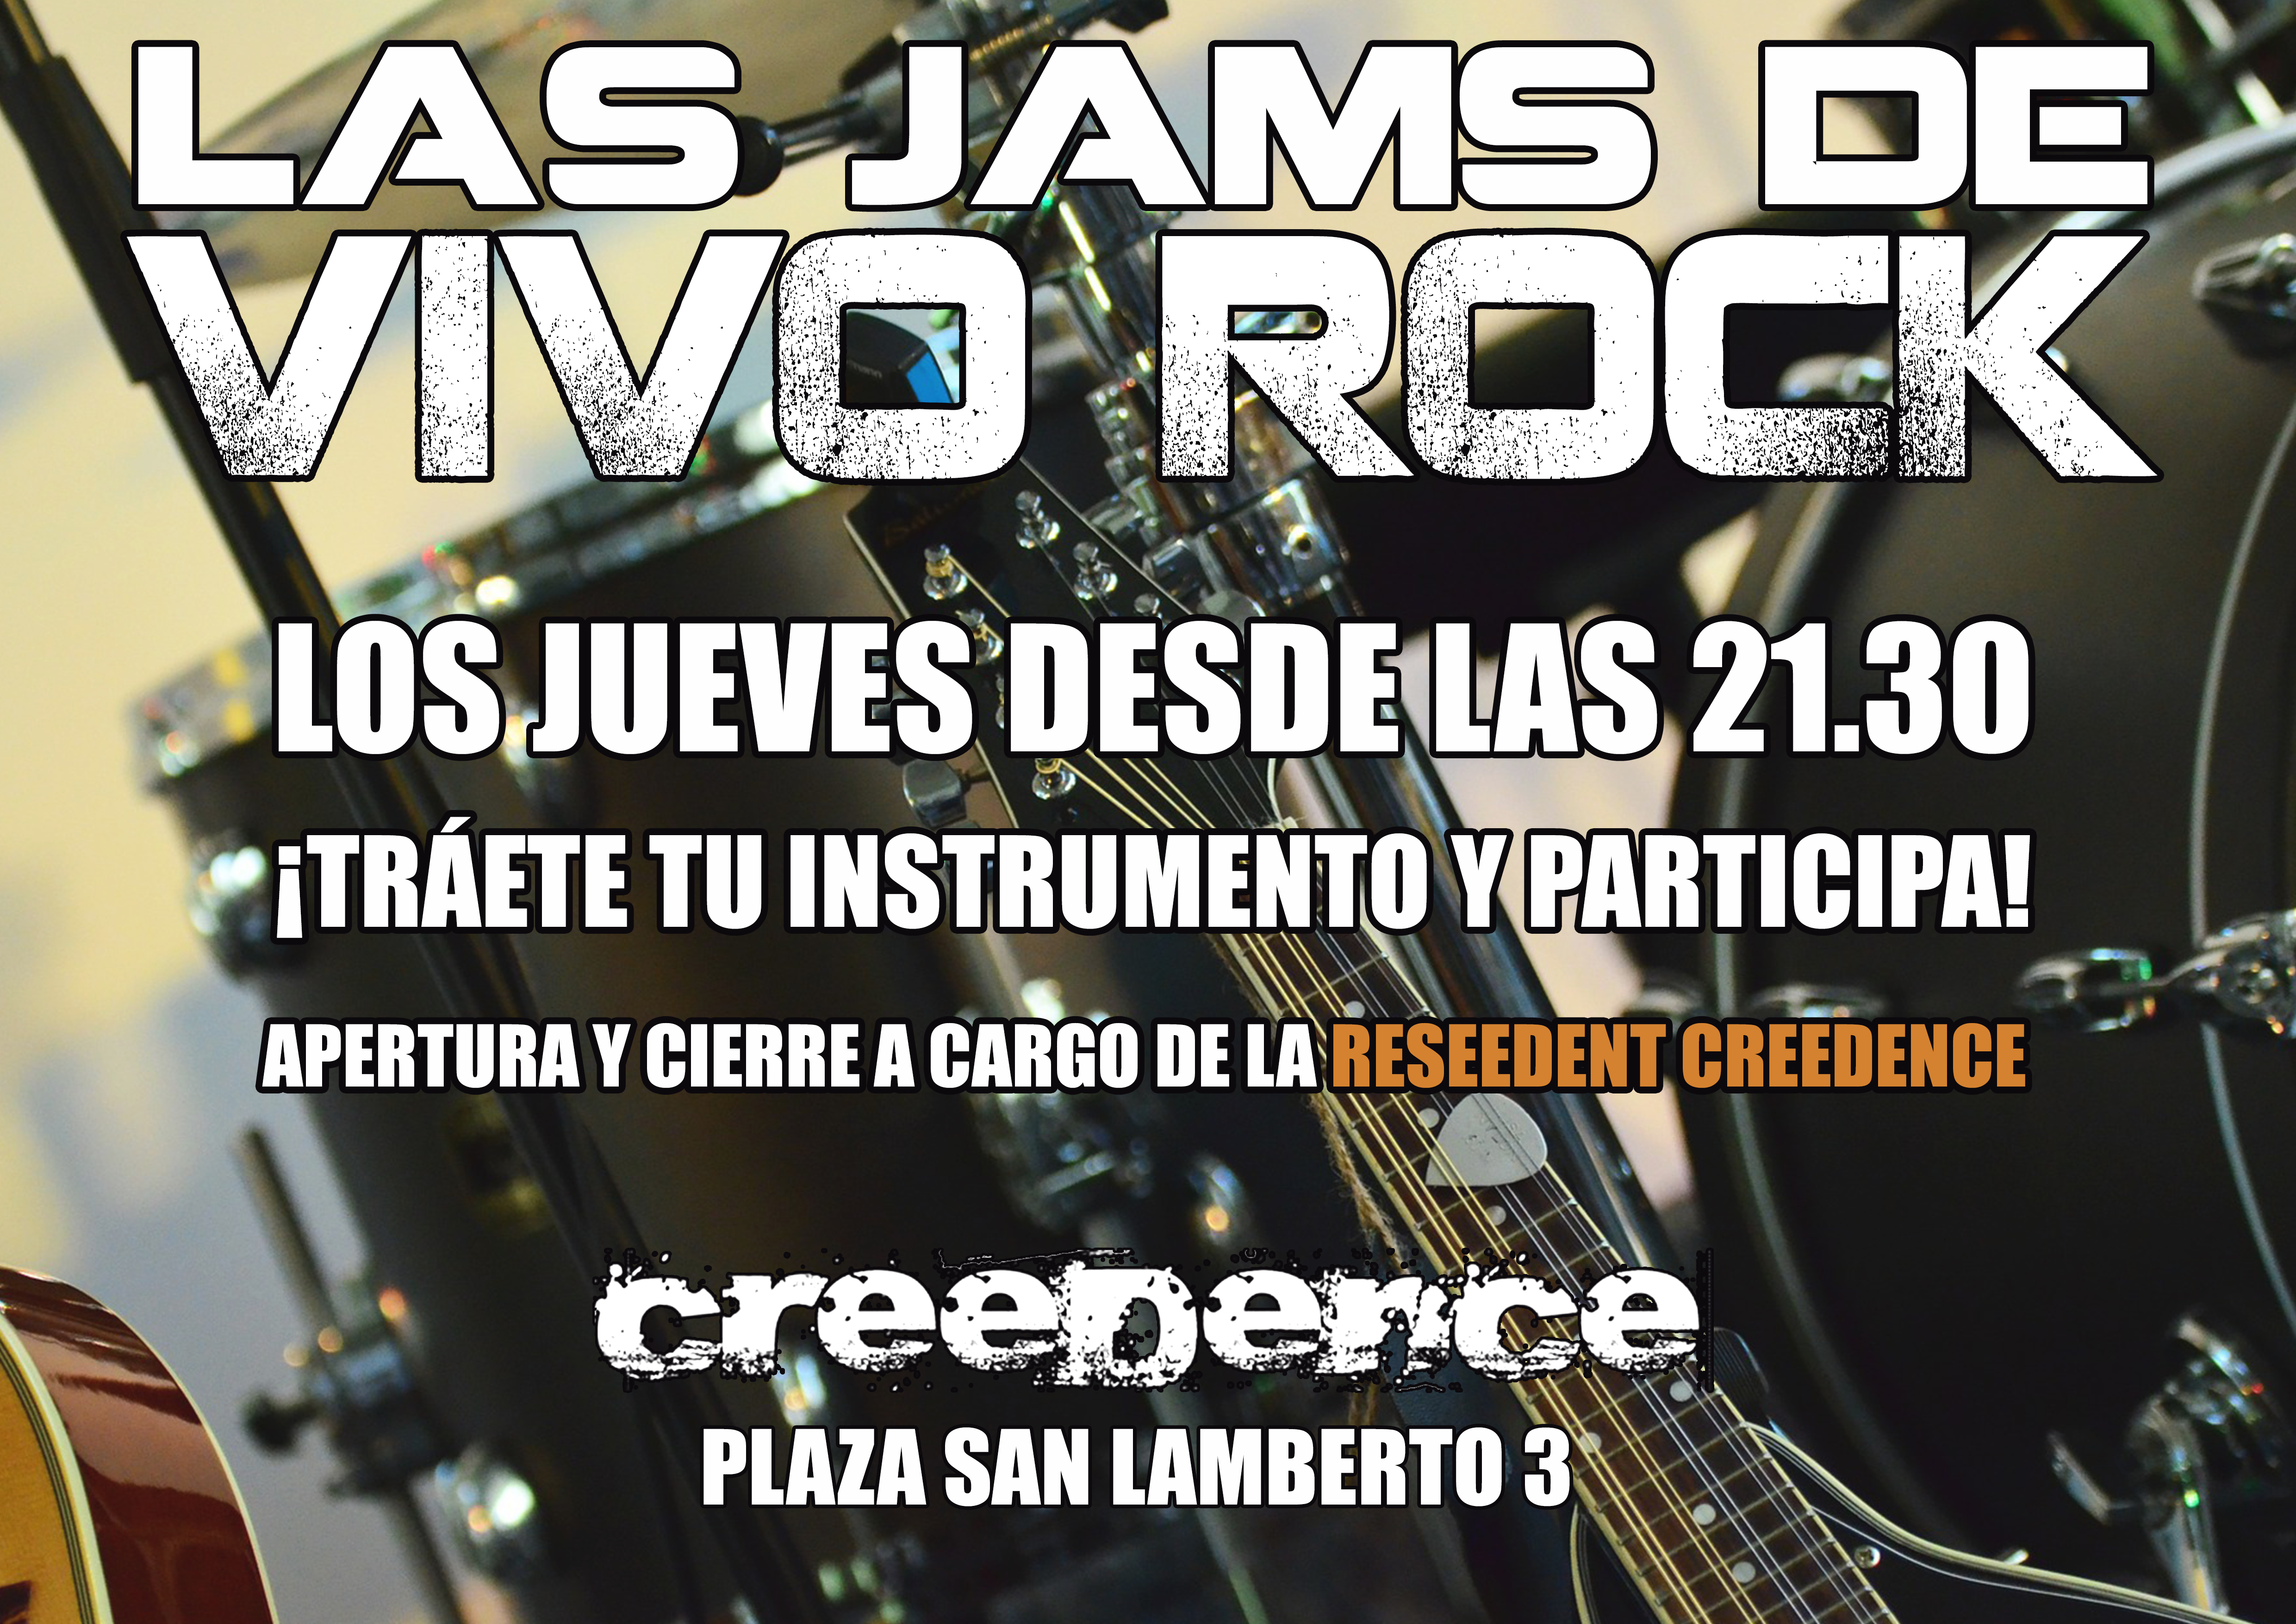 Las Jams De Vivo Rock